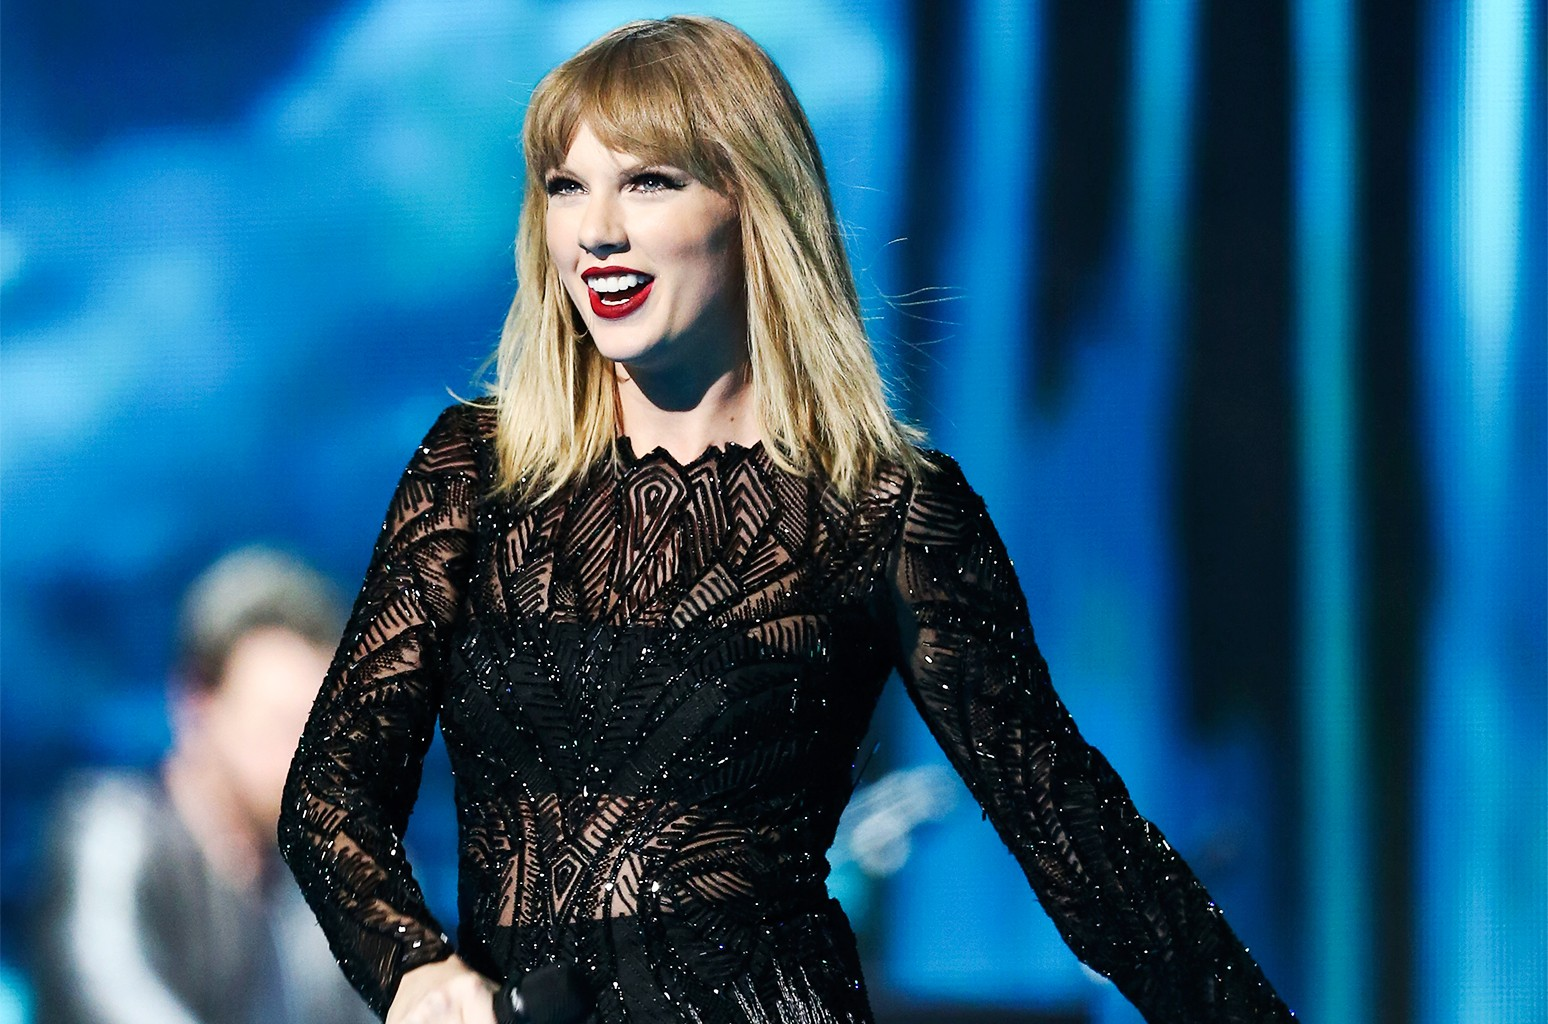 Taylor Swift Performs Better Man I Don T Wanna Live Forever For First Time At Stunning Pre Super Bowl Set Billboard